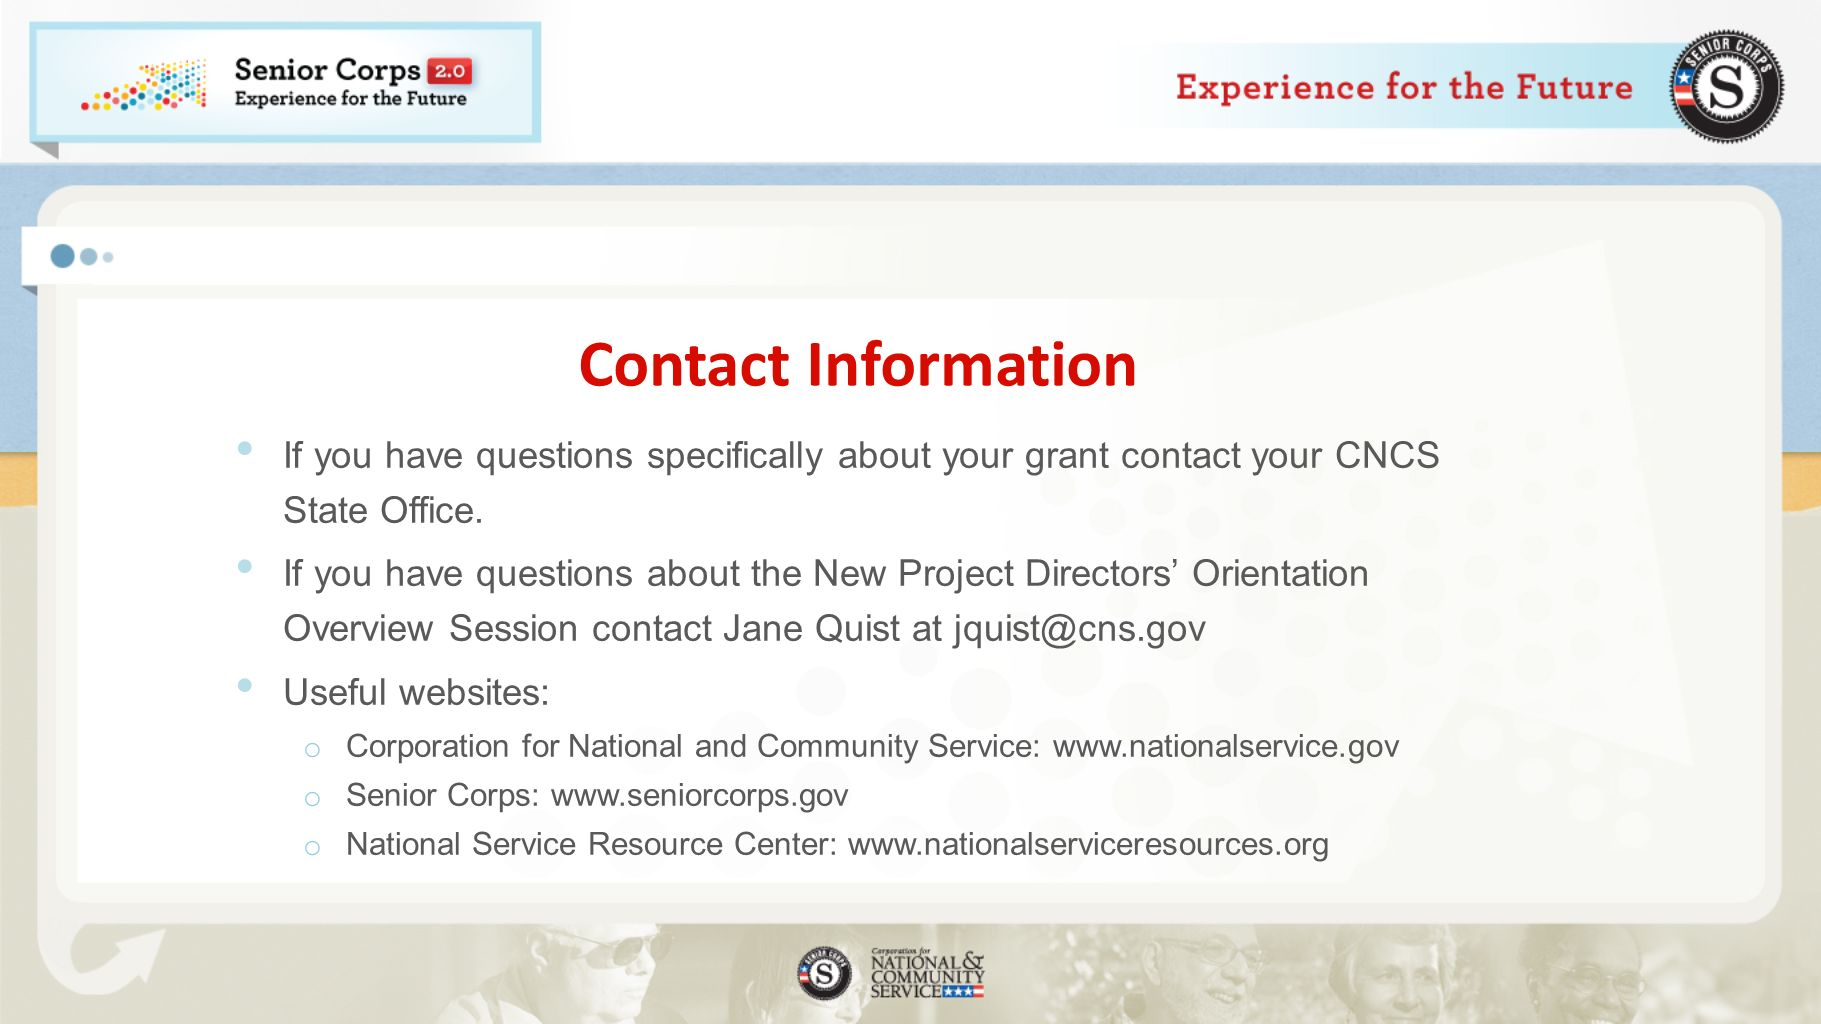 Contact Information If you have questions specifically about your grant contact your CNCS State Office.